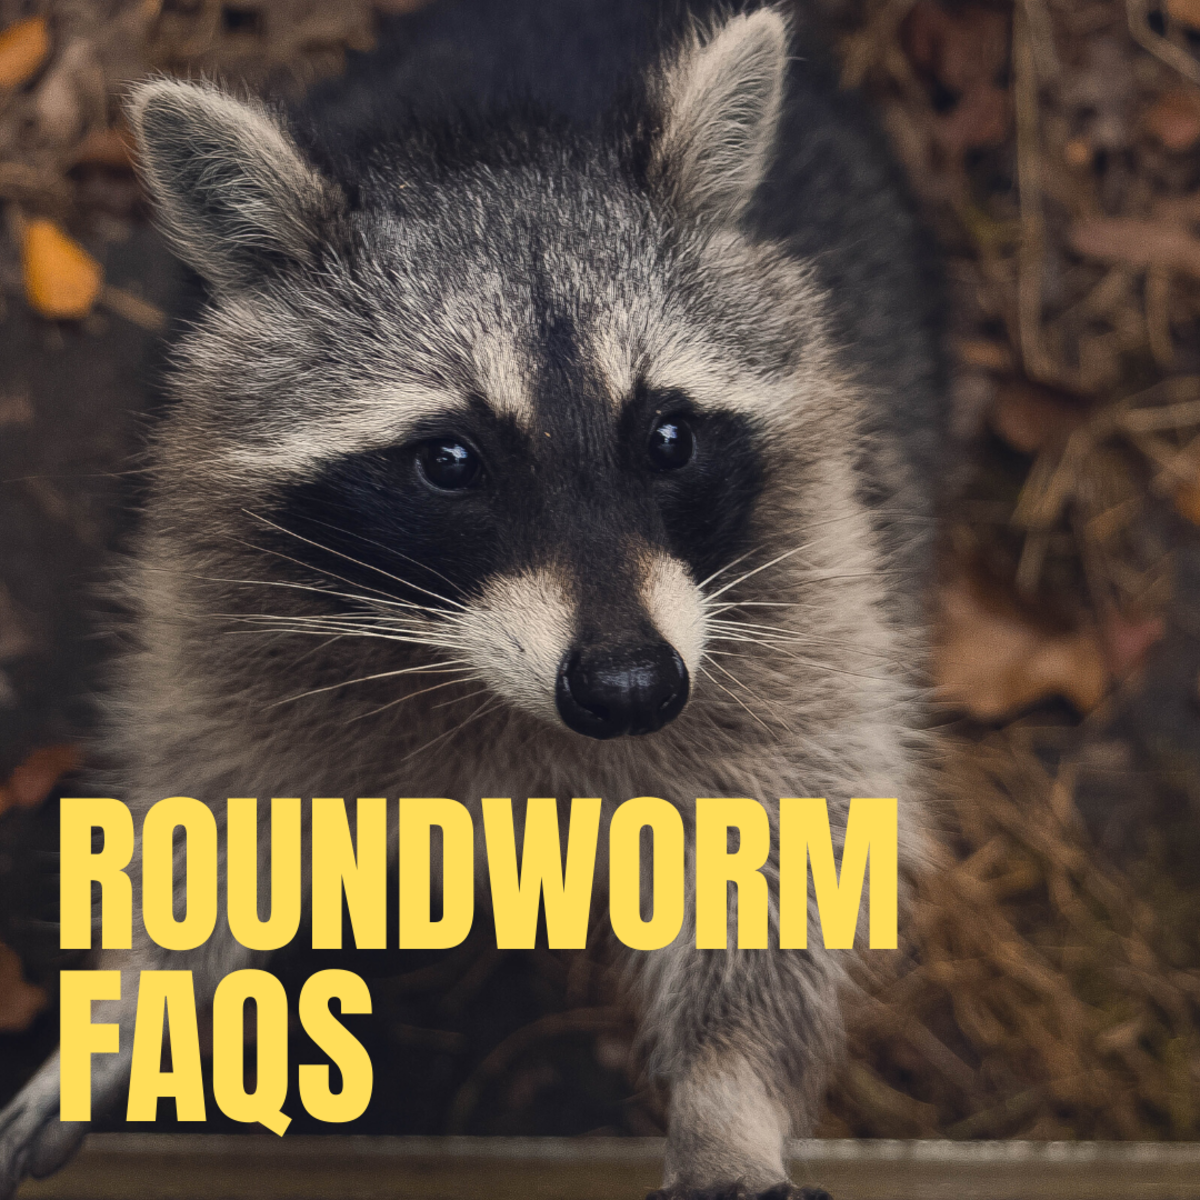 Roundworm in wildlife and pets.